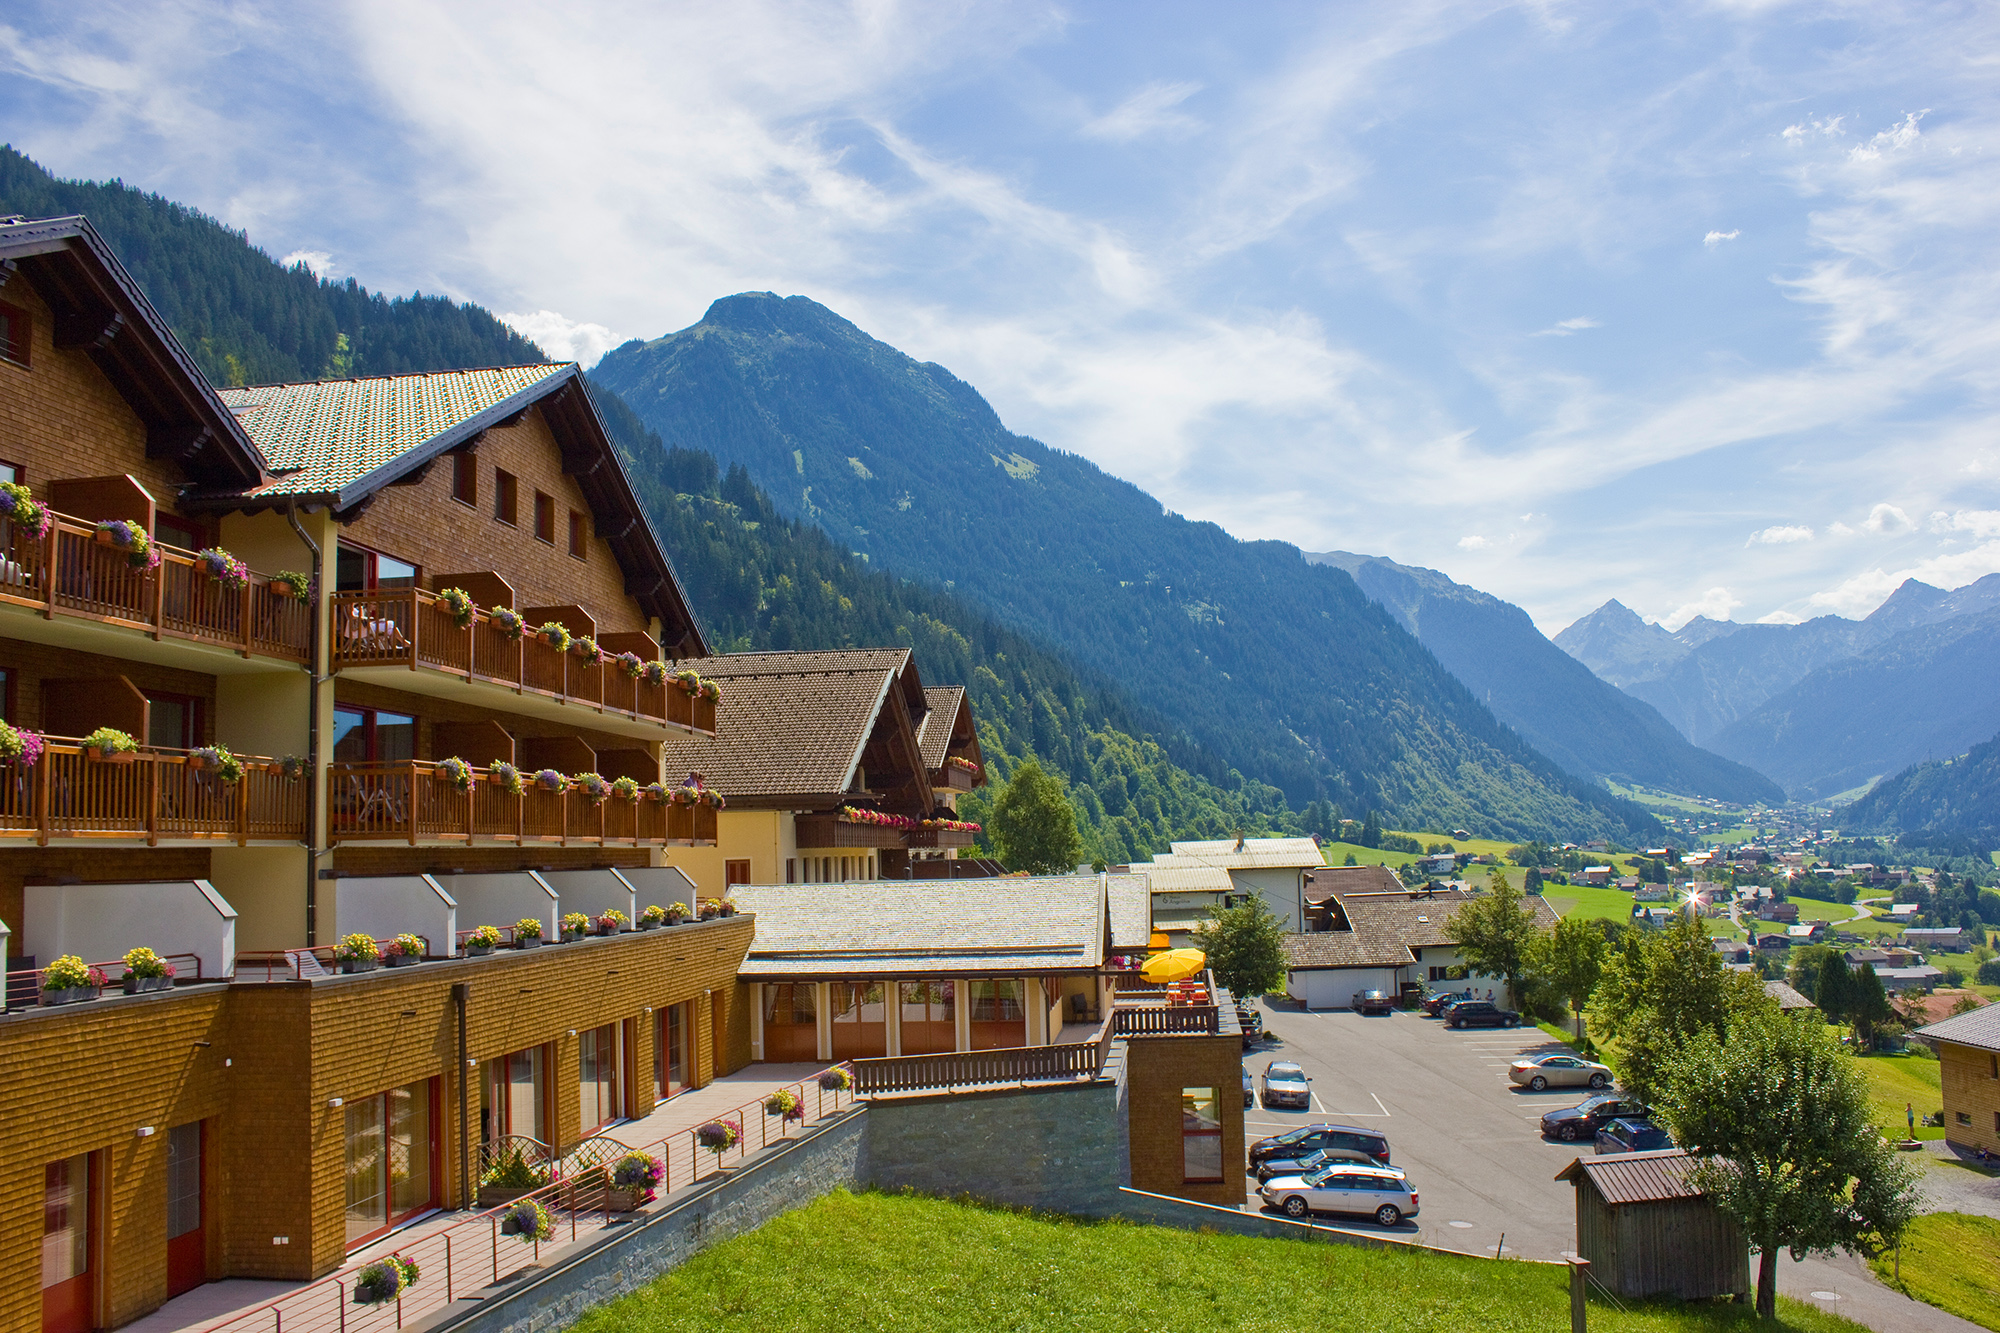 Hotel St Gallenkirch